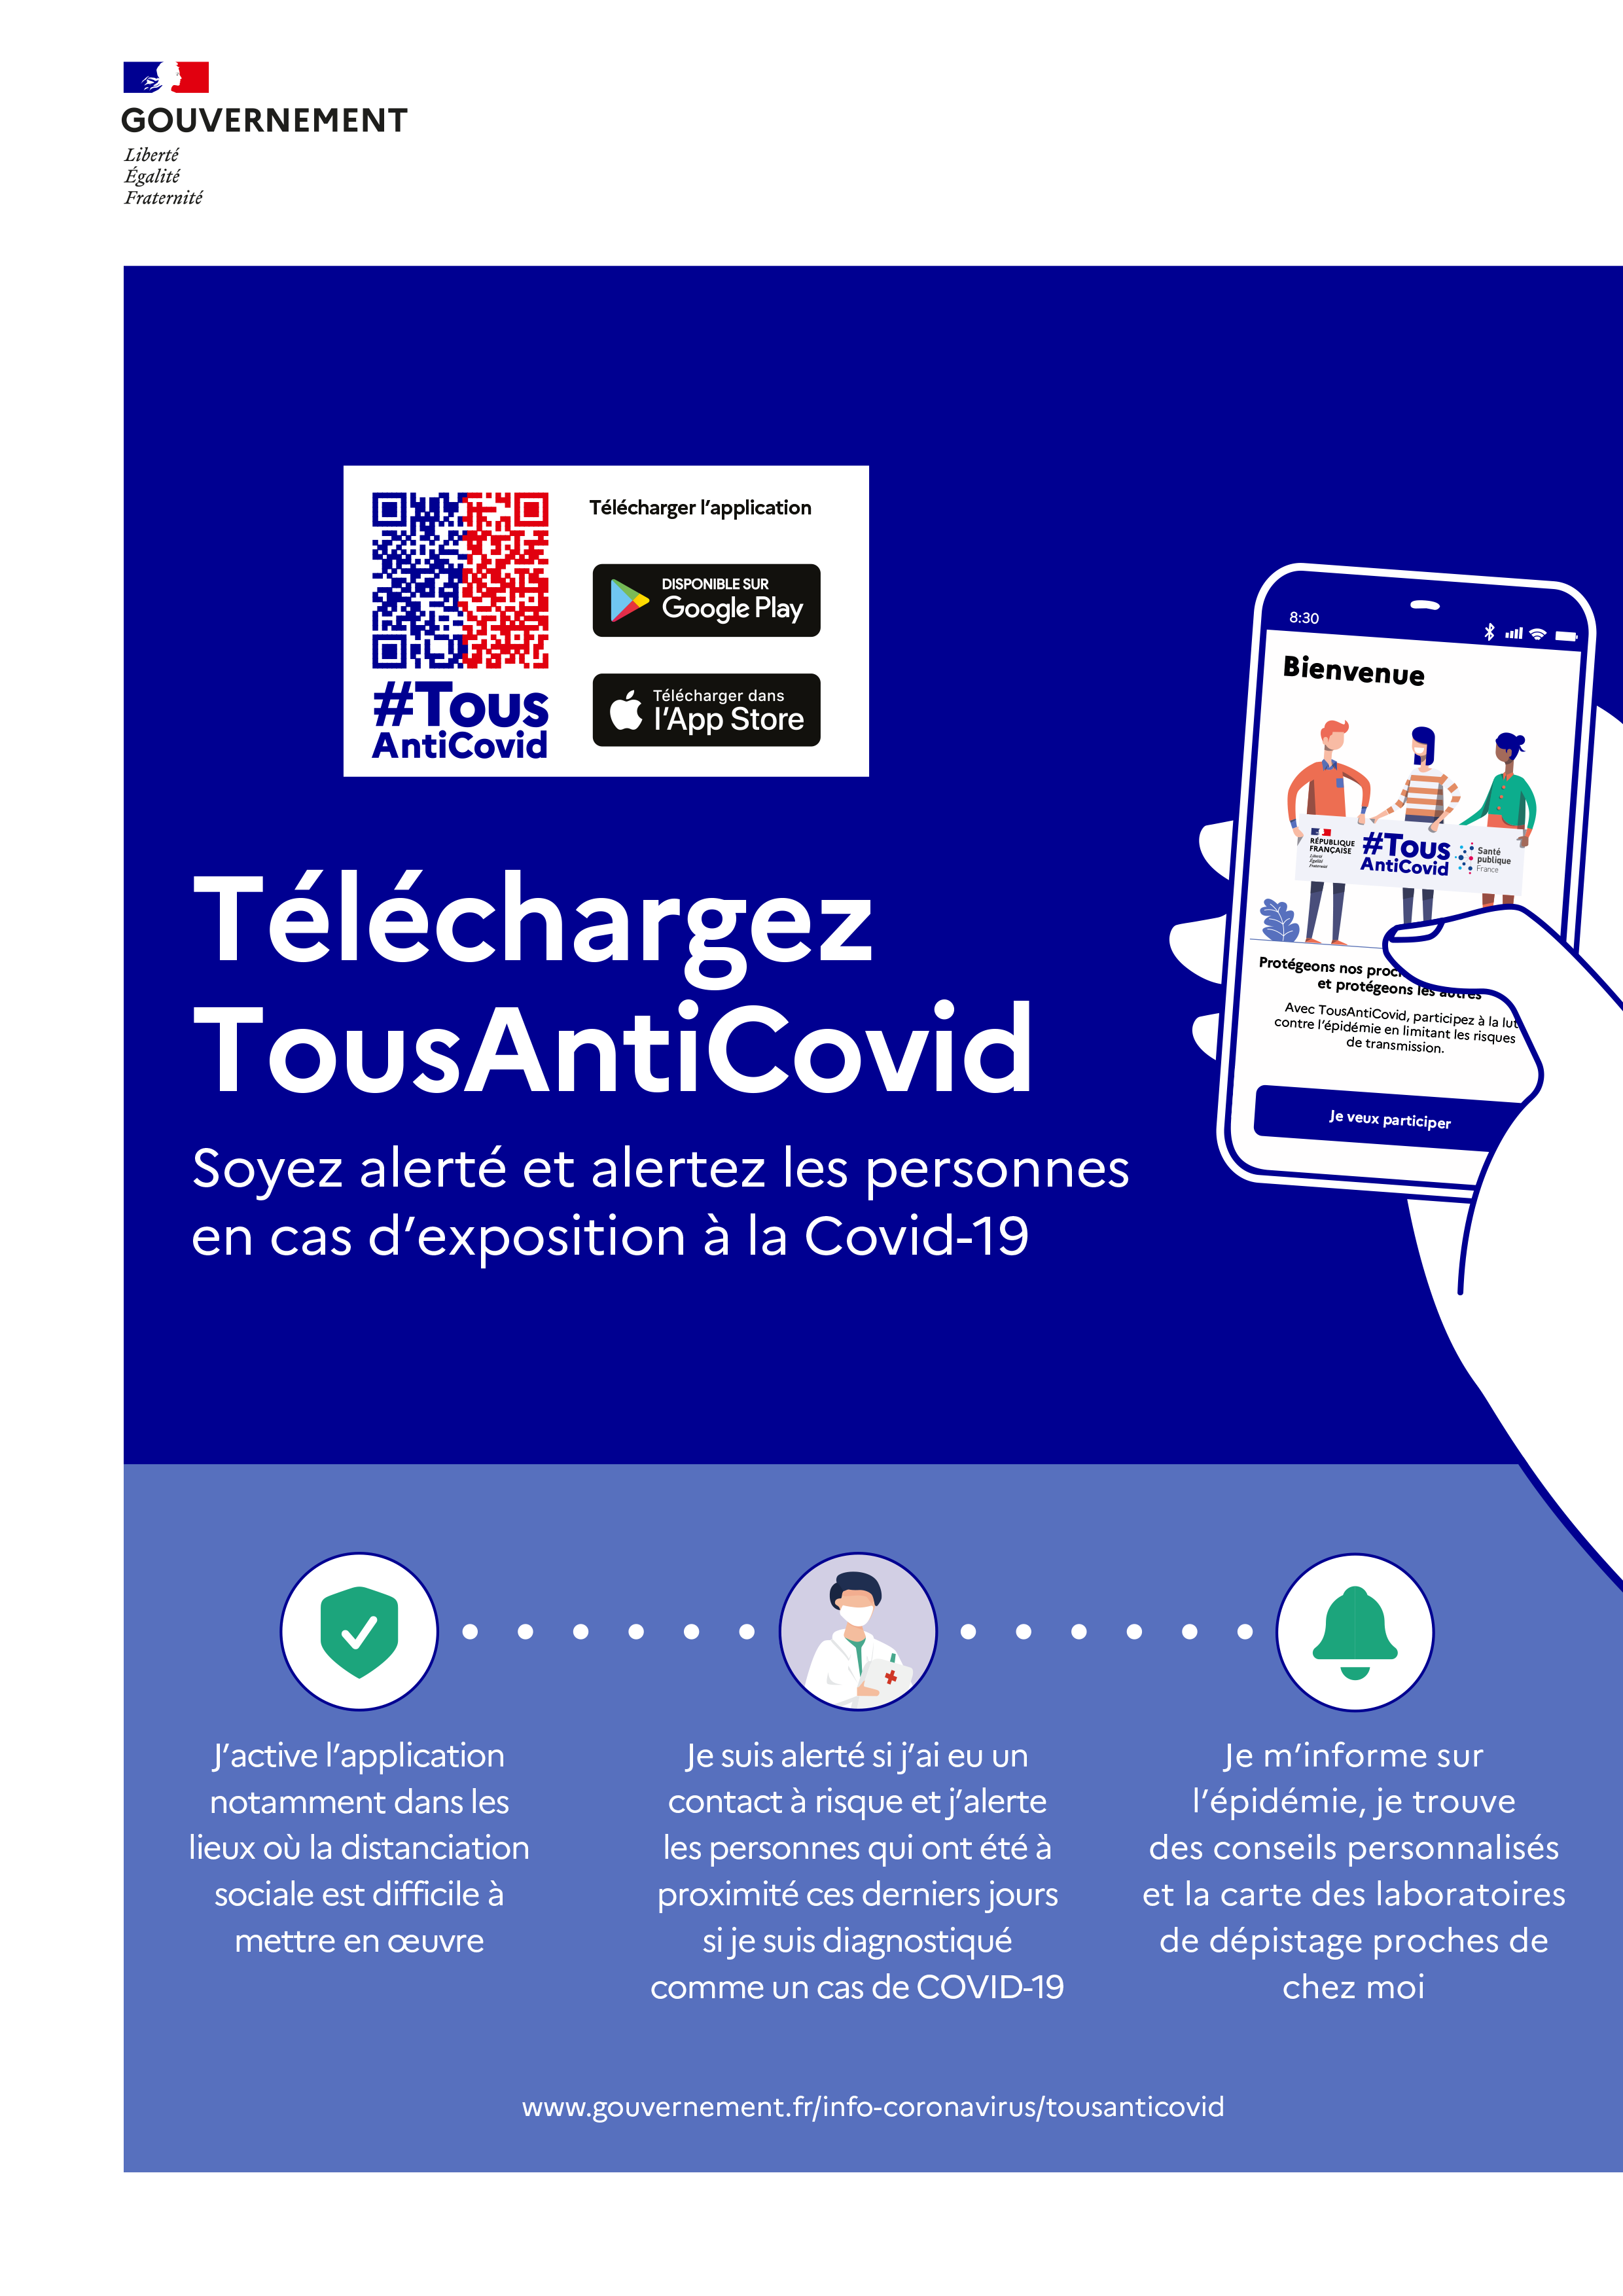 https://www.laval.fr/fileadmin/Phototheque_agglo/Actualites/COVID-19/tous_anticovid_application.png